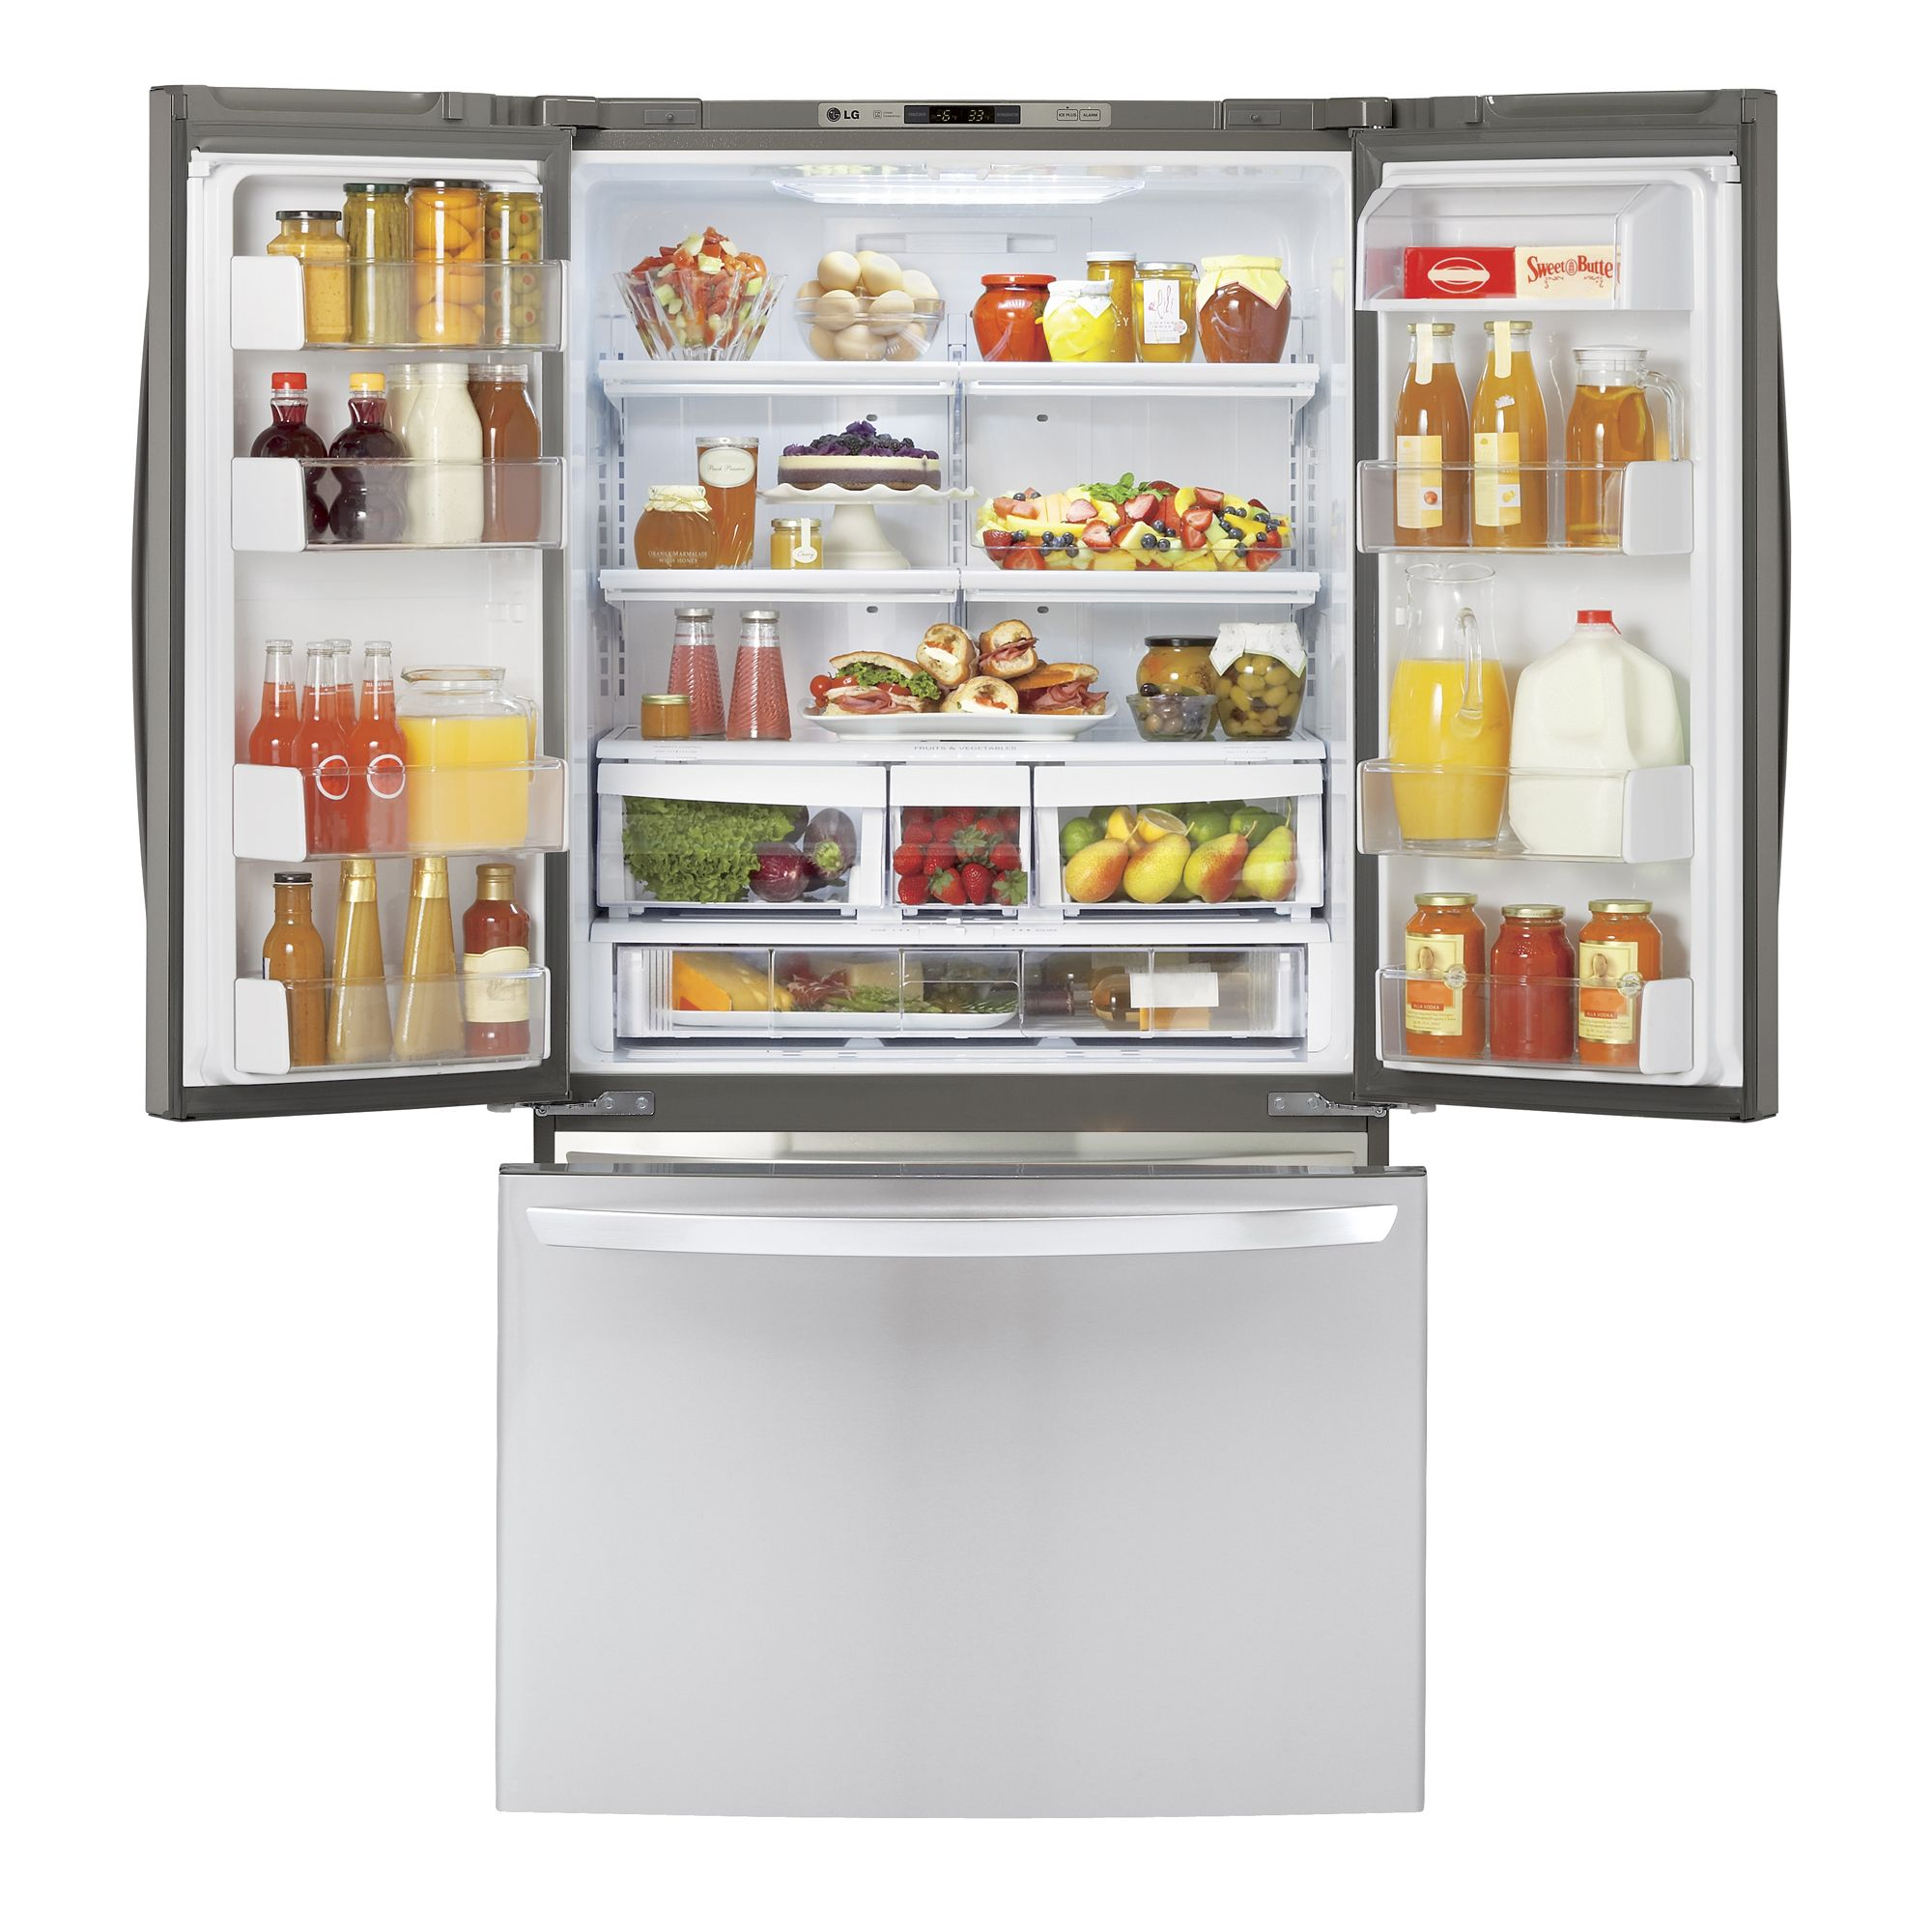 LG 20.7 cu. ft. French Door Bottom-Freezer Refrigerator